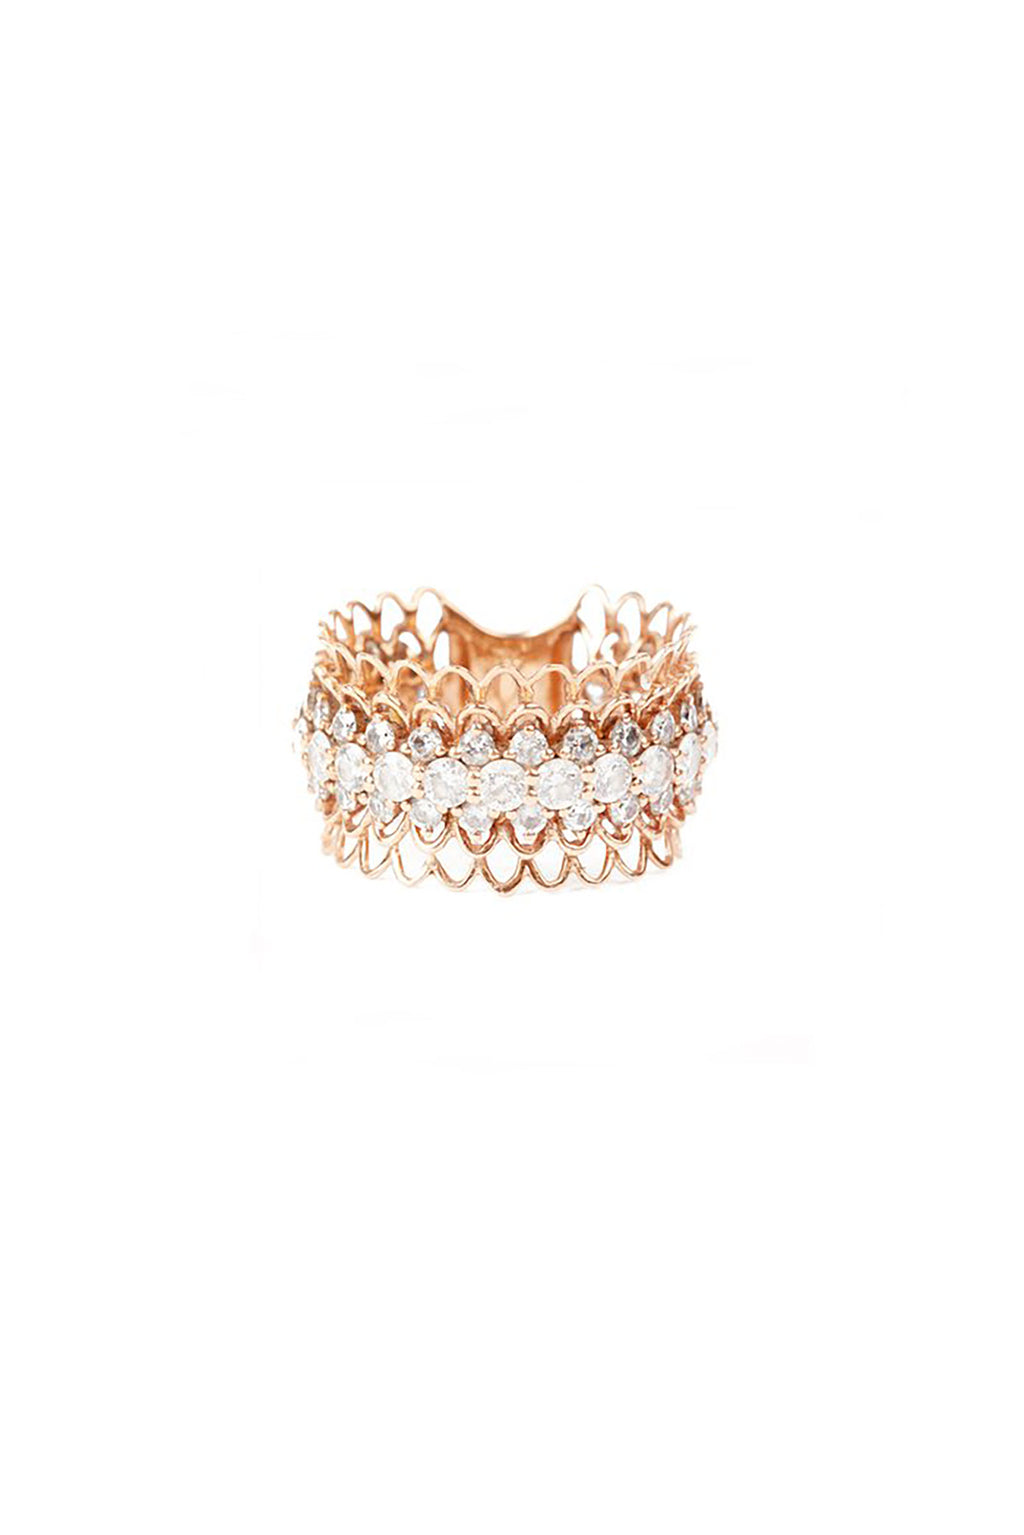 Thick 18KT Rose Gold Layered Lace 61 Diamonds Ring